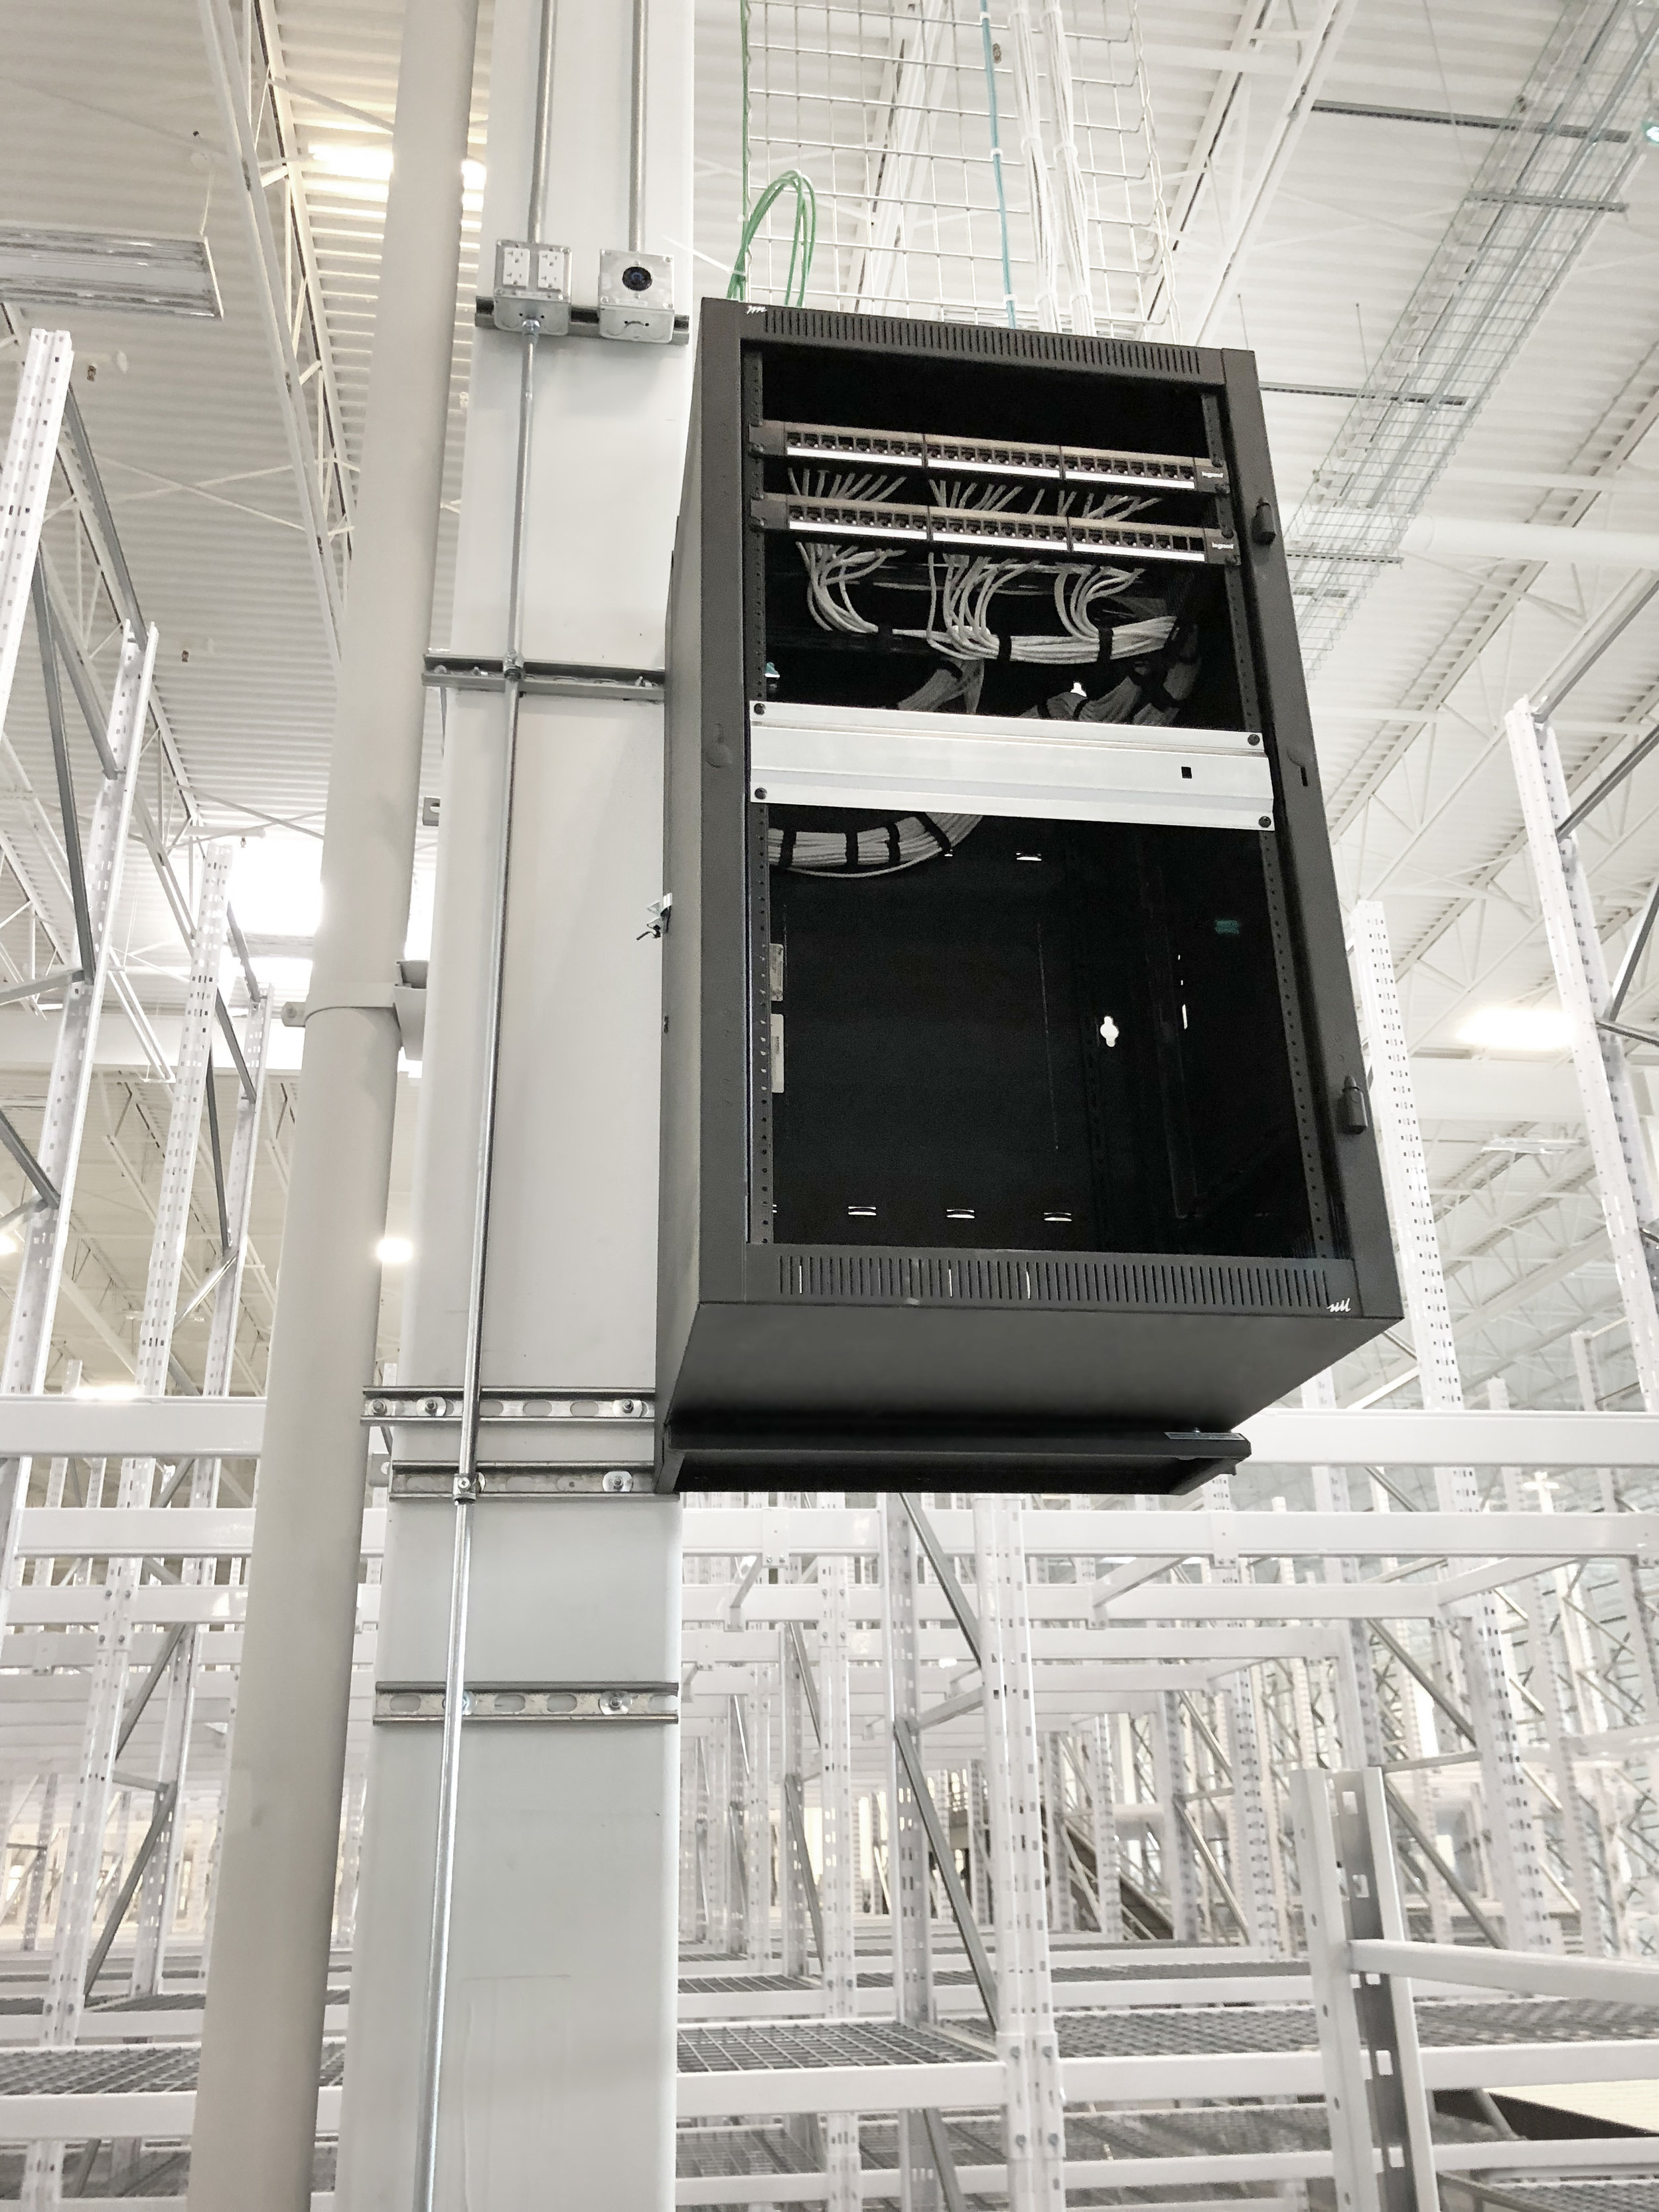 This rack has the loomed cable fed into it, and network runs punched down to patch panels.